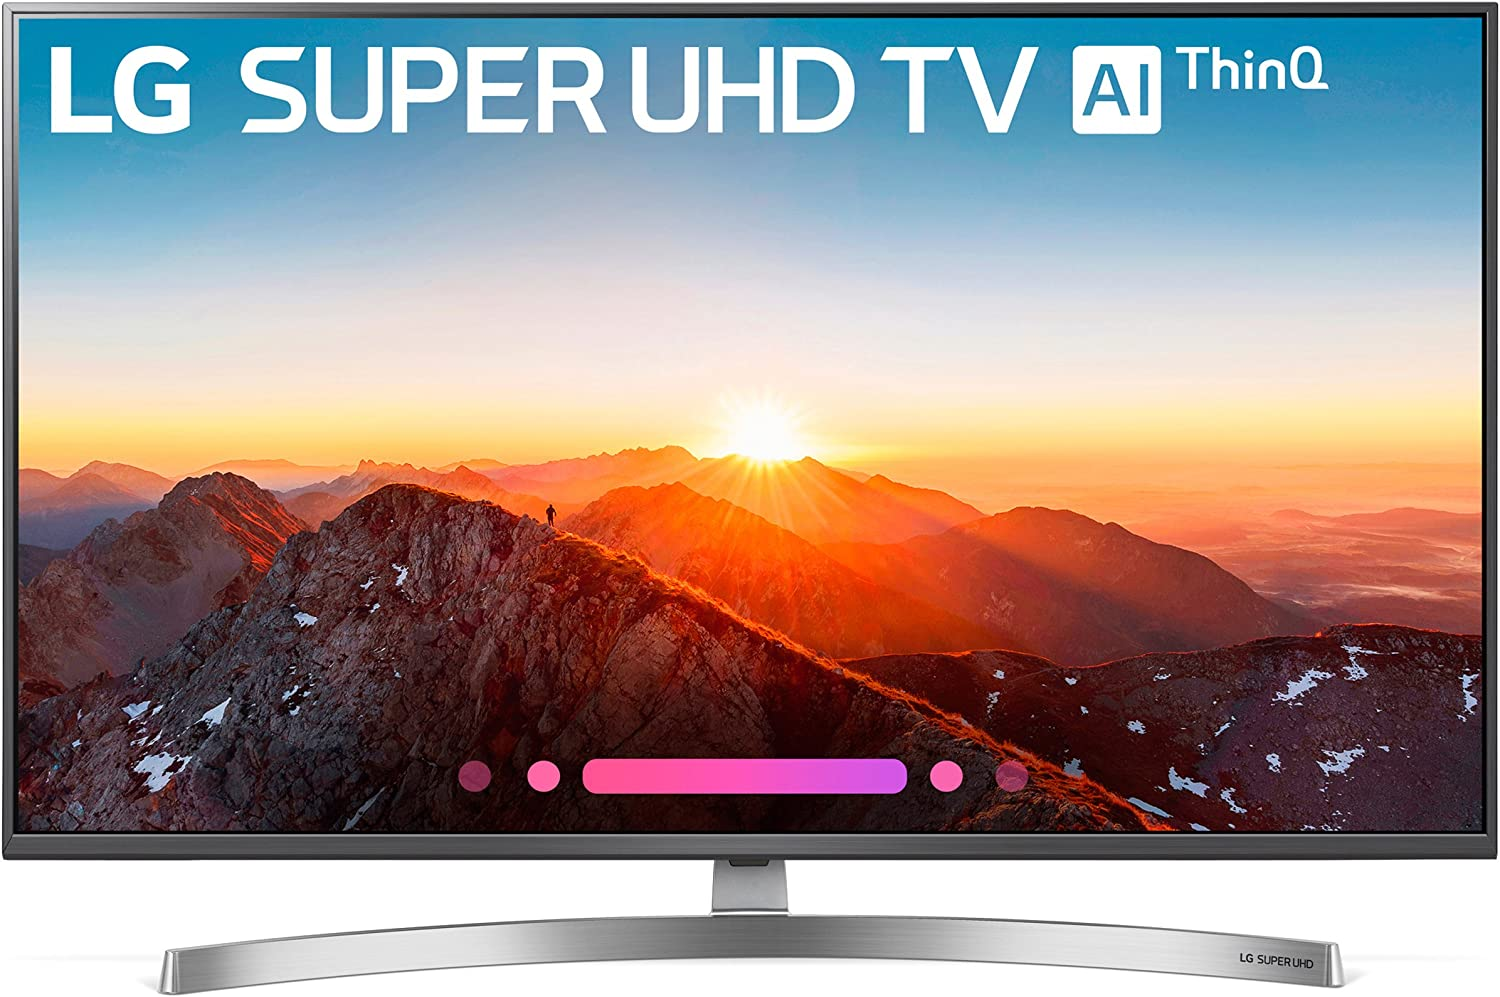 LG Electronics 55SK8000PUA 55-Inch 4K Ultra HD Smart LED TV (2018 Model)